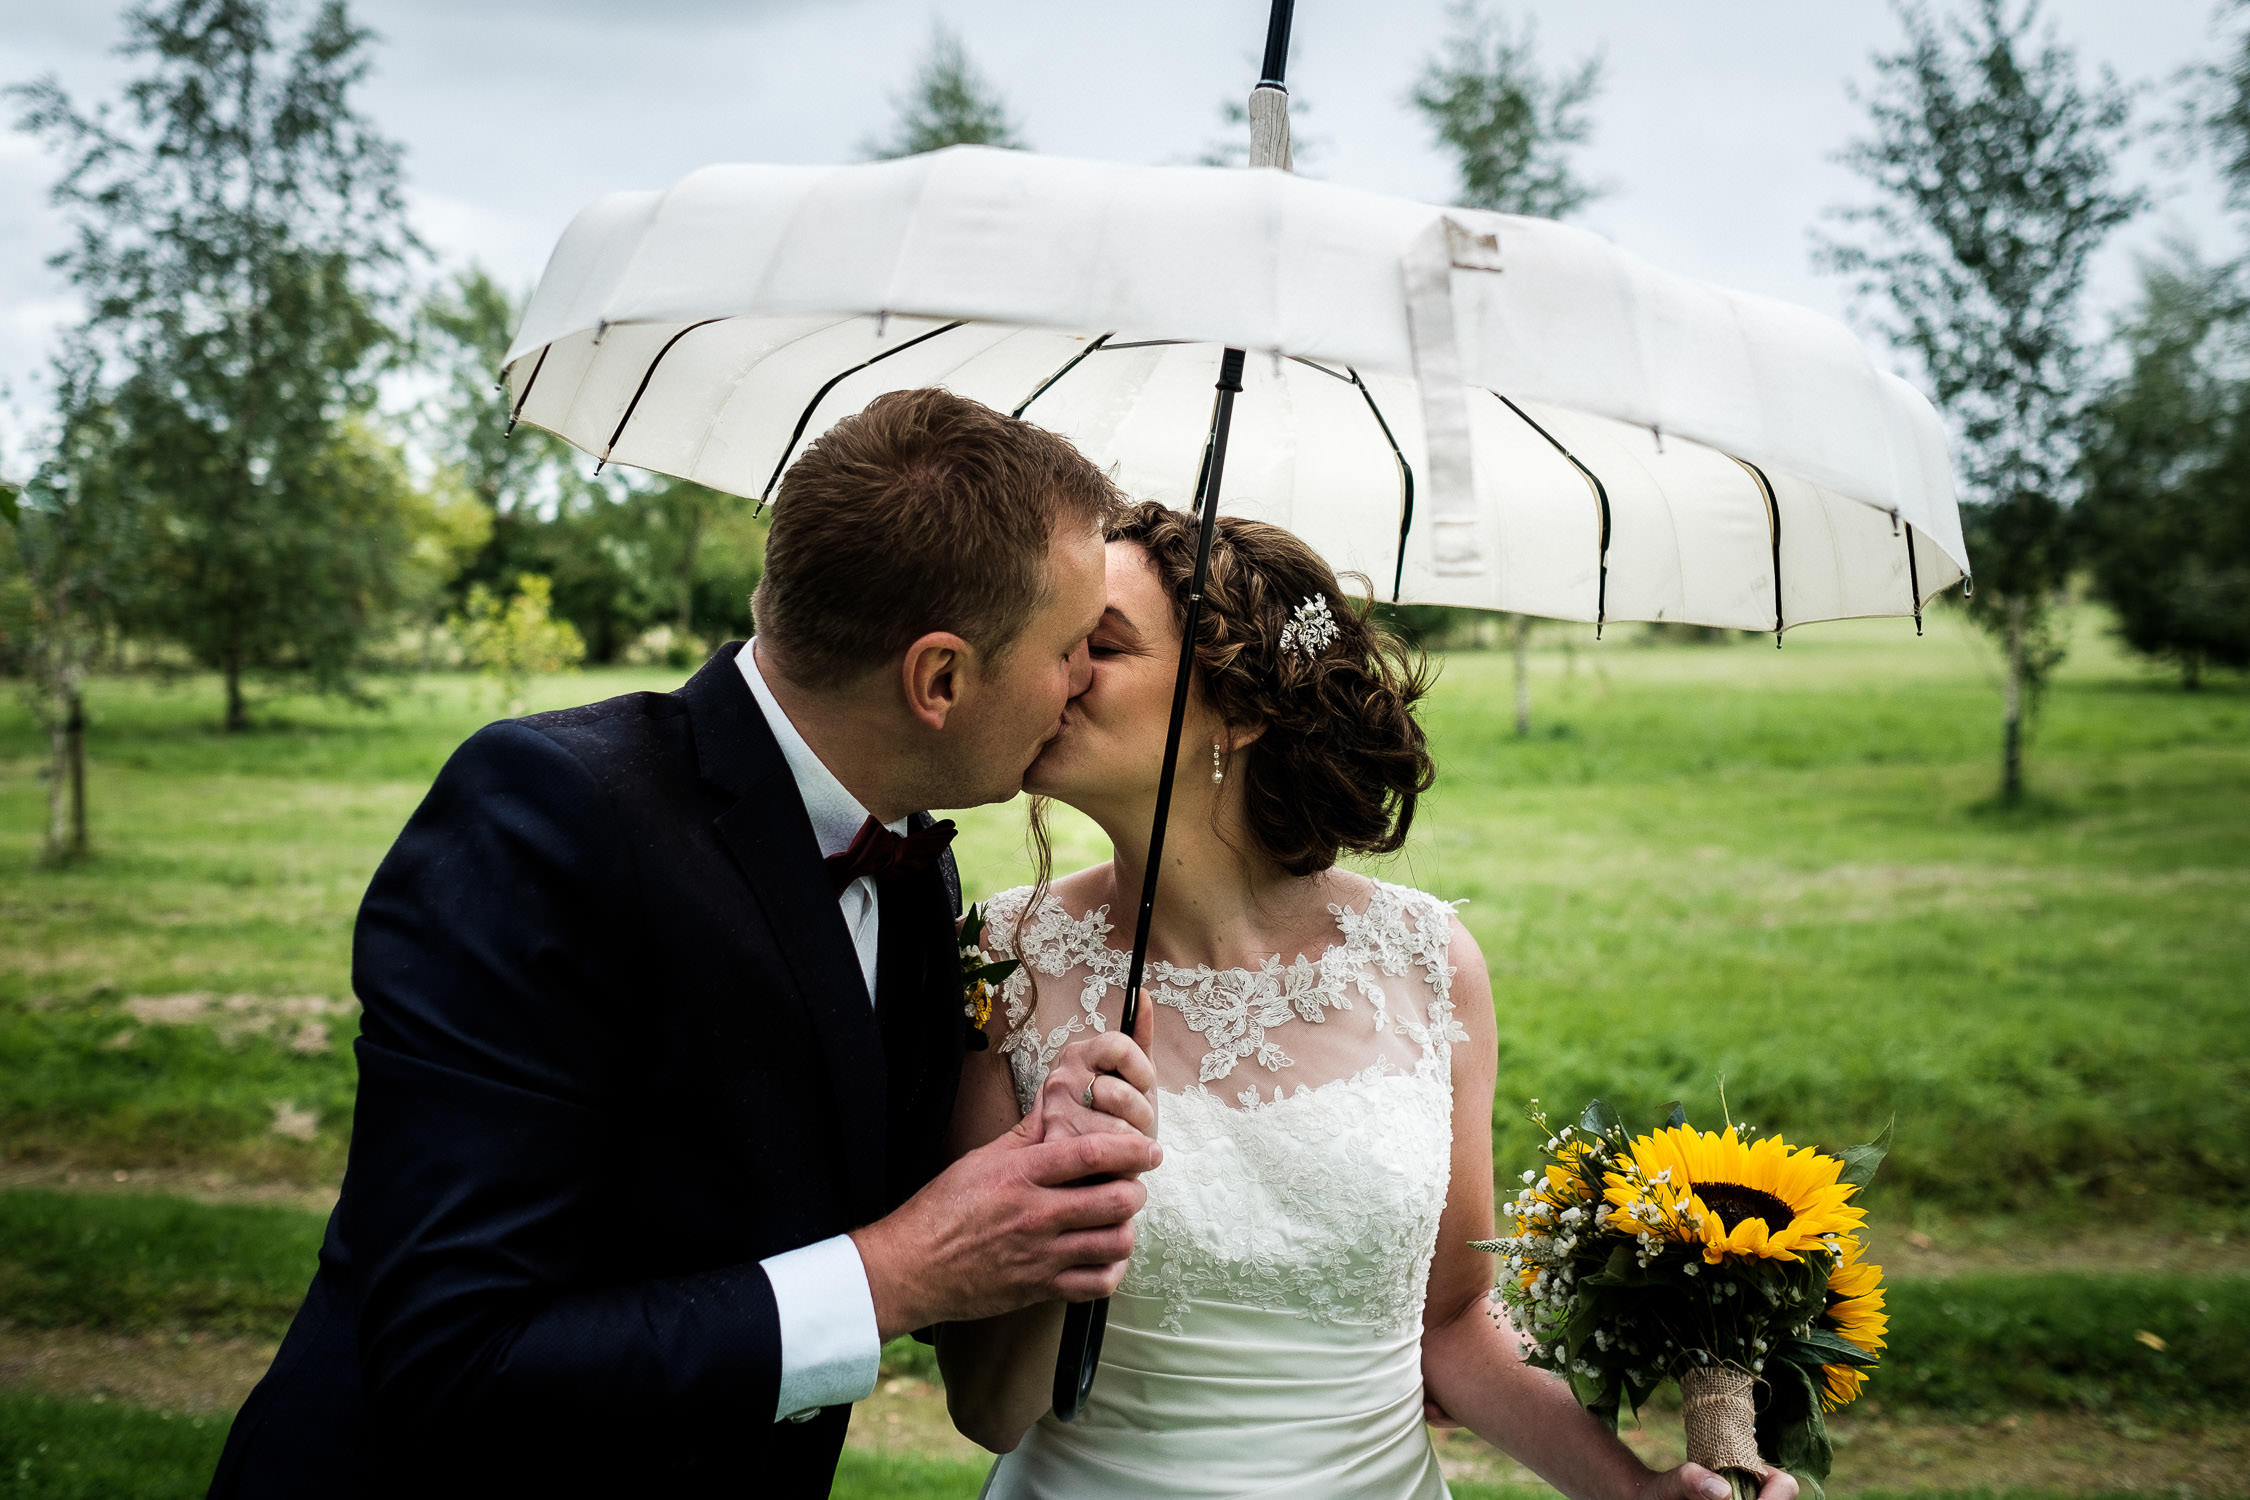 wedding couple share kiss under umbrella